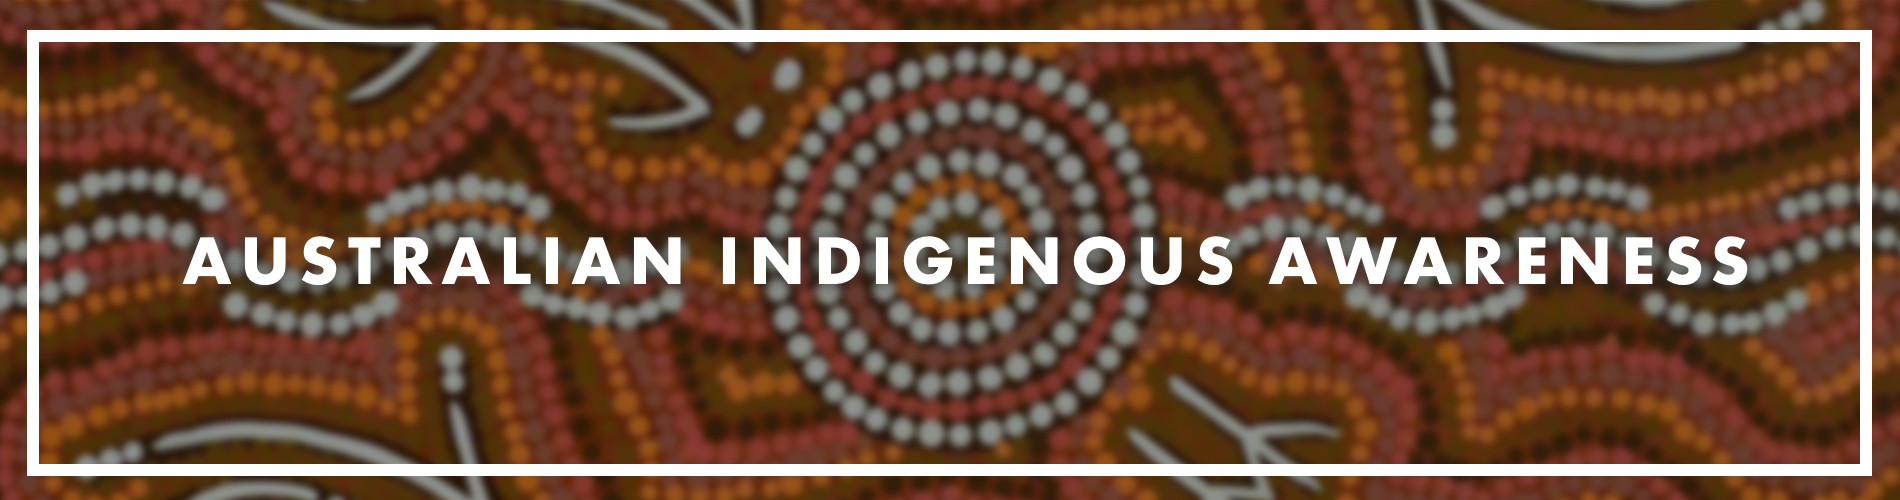 Australian Indigenous Awareness Header